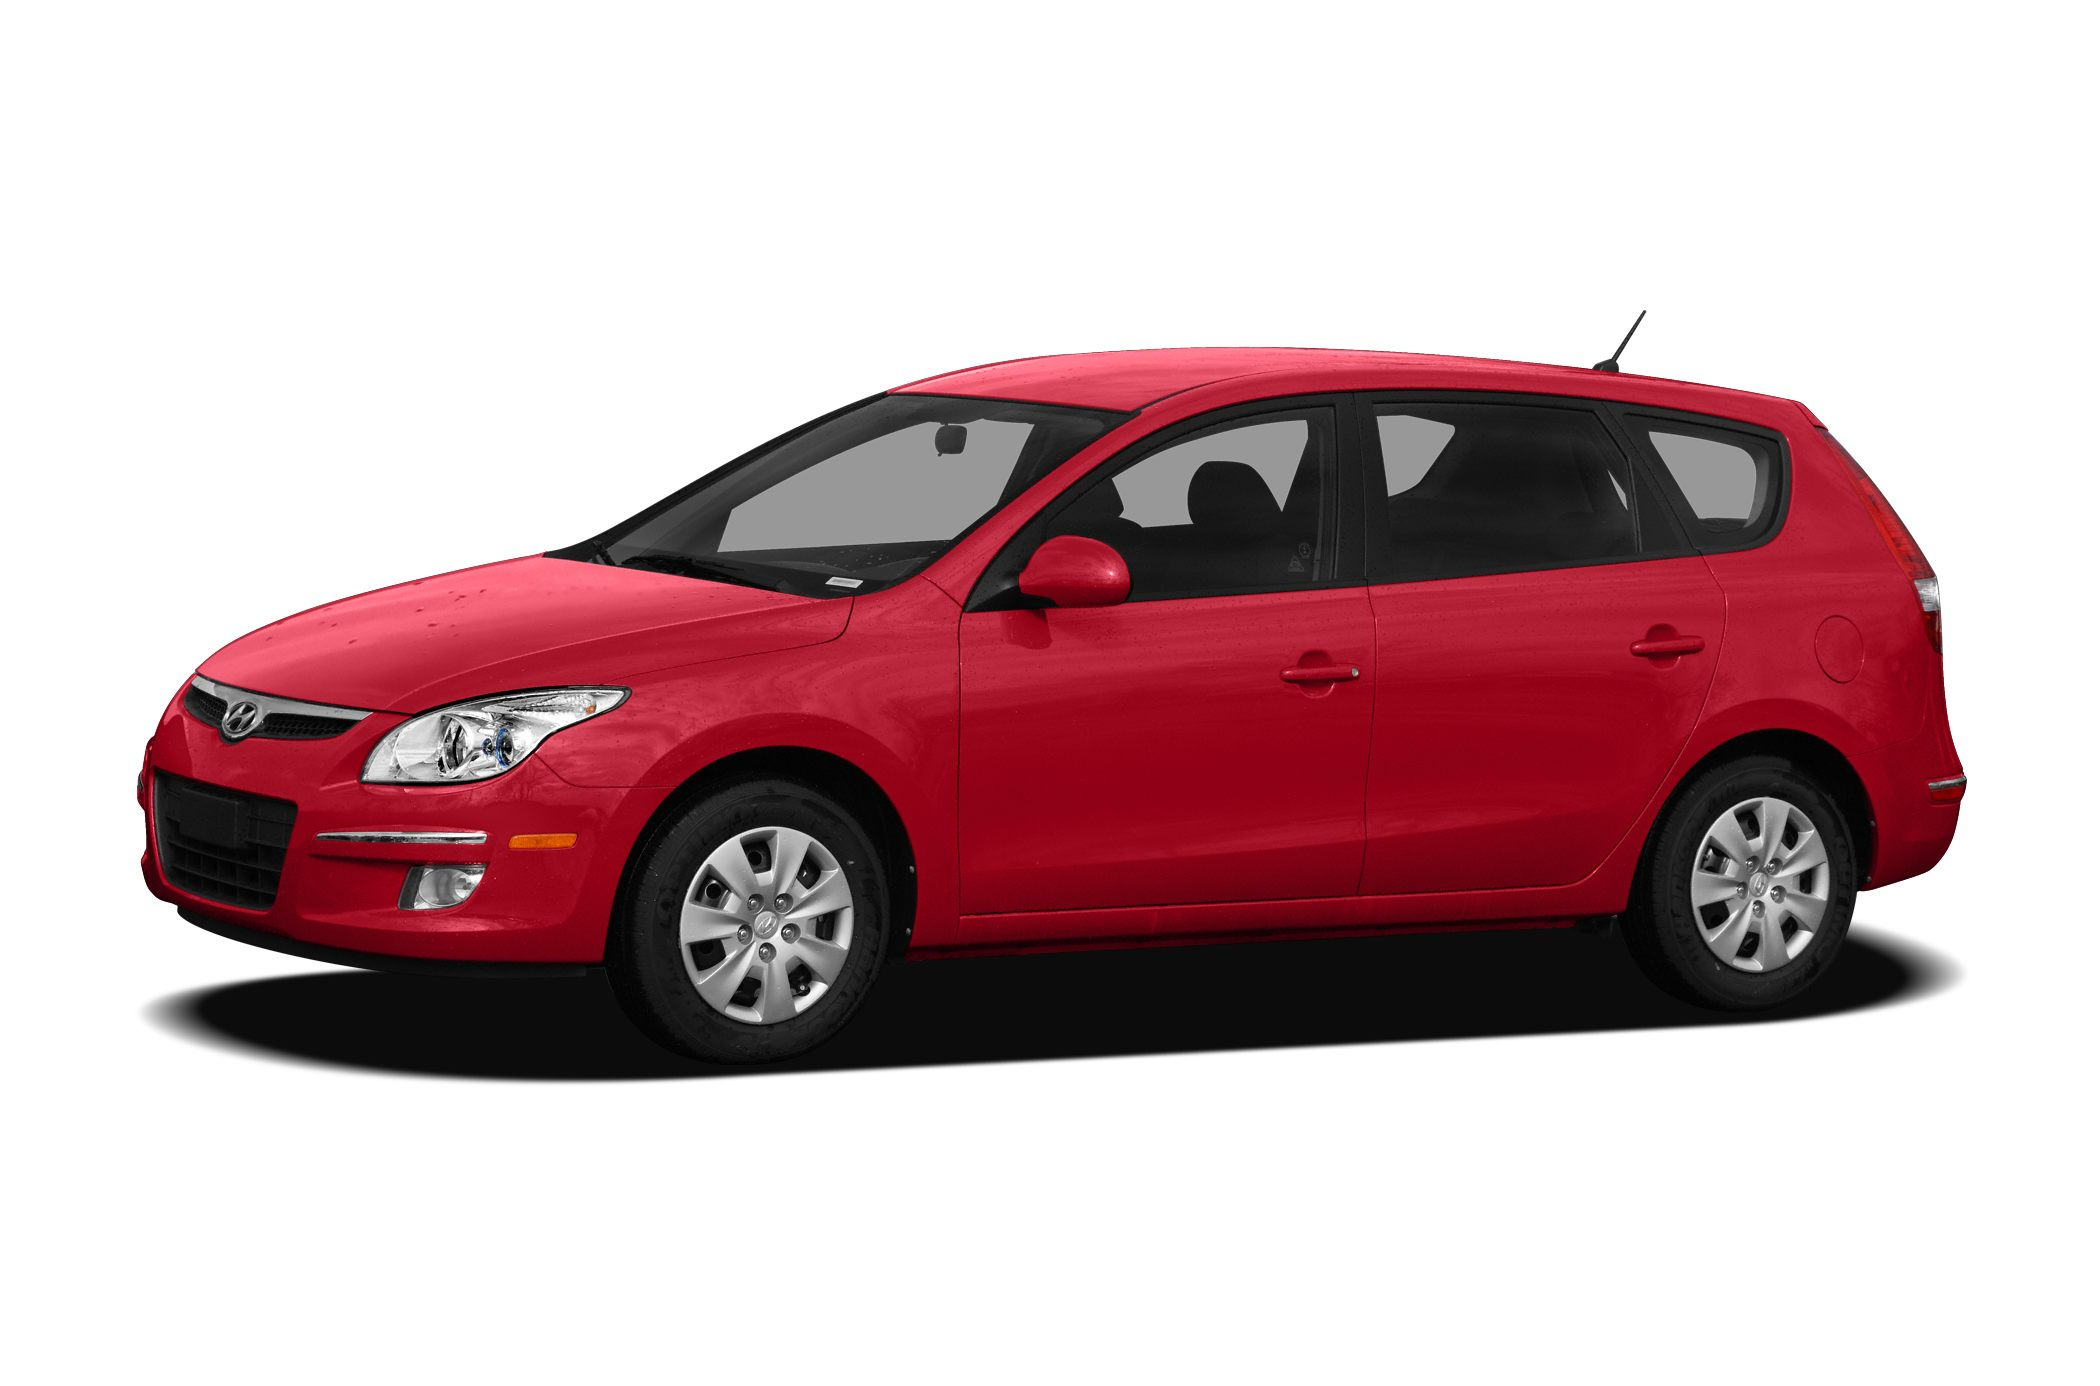 2009 Hyundai Elantra Touring Hatchback for sale in Palm Springs for $13,995 with 44,145 miles